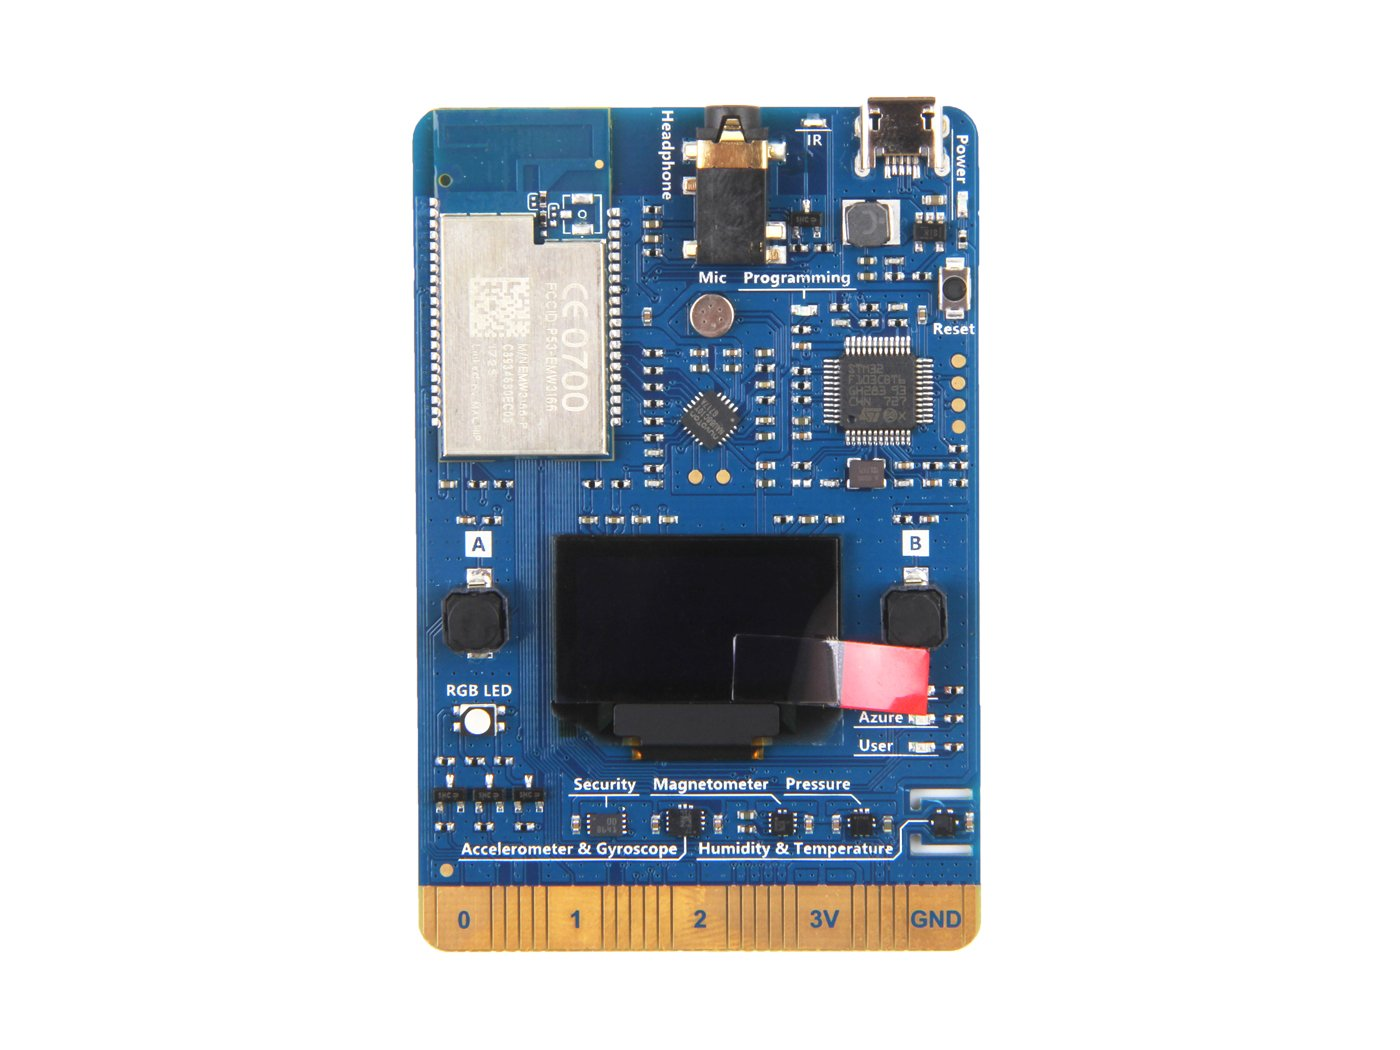 En ziyun az3166 IOT Developer KIT, IT IS COMPATIBLE WITH Arduino with abundant Peripherals and Sensor, Could Be Used For The Development of IOT and Smart ...